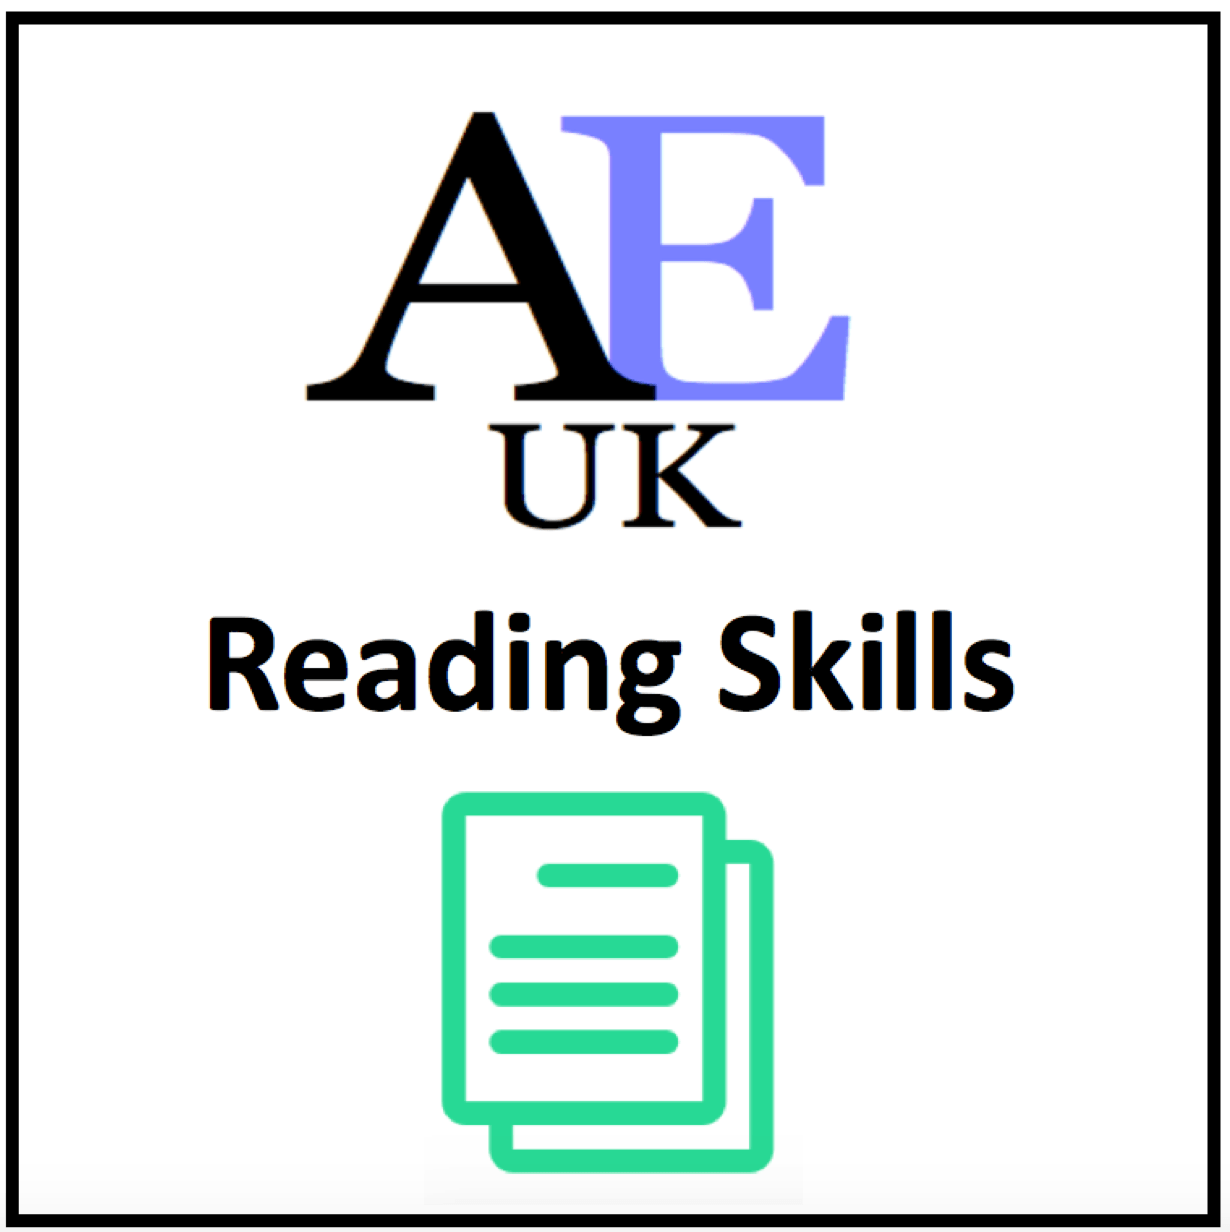 - Reading Skills - Academic English Reading Lessons And Worksheets